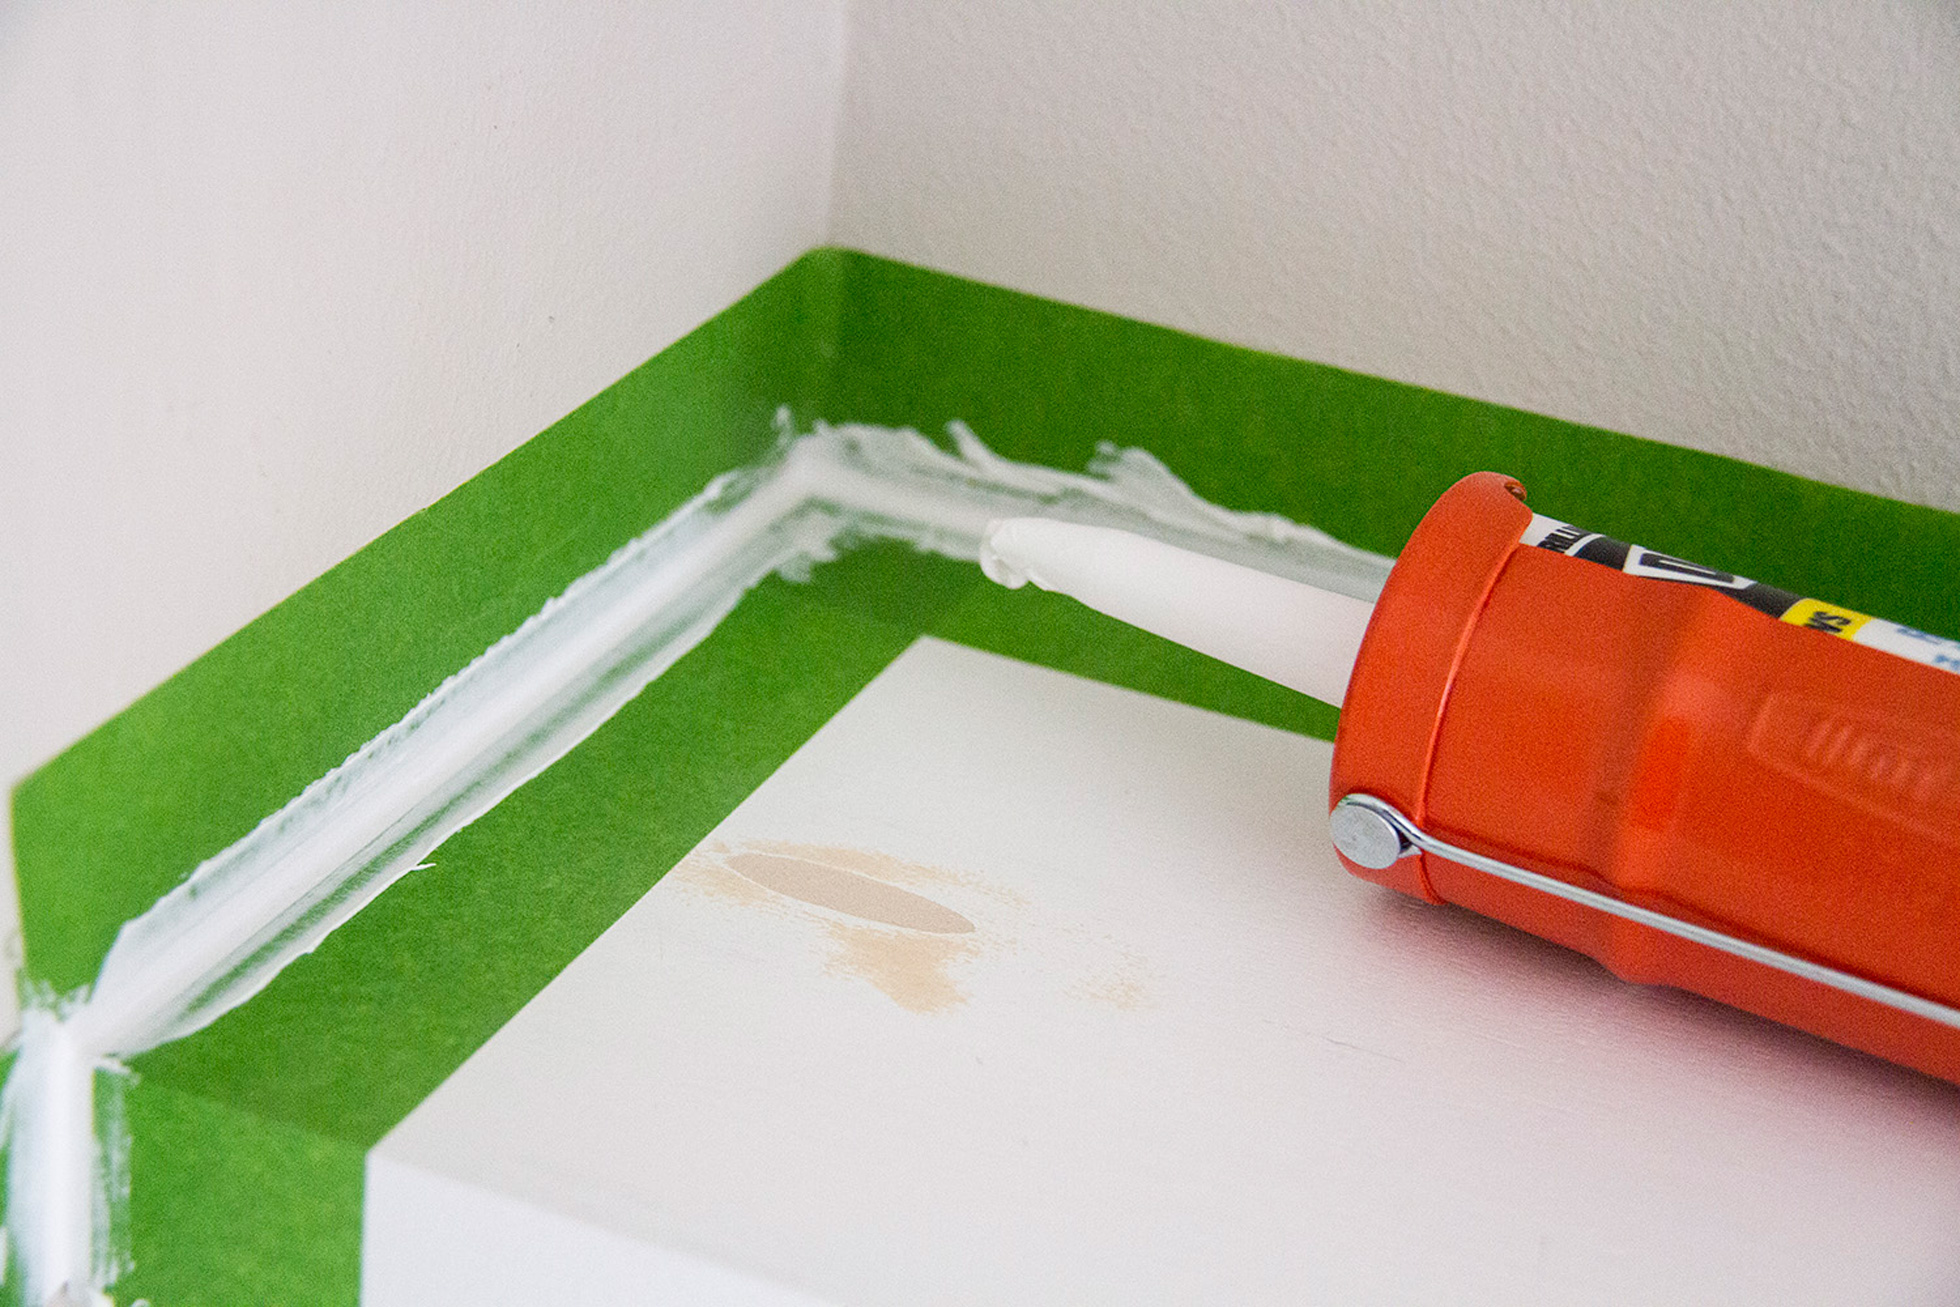 Use painters tape when caulking for straight lines